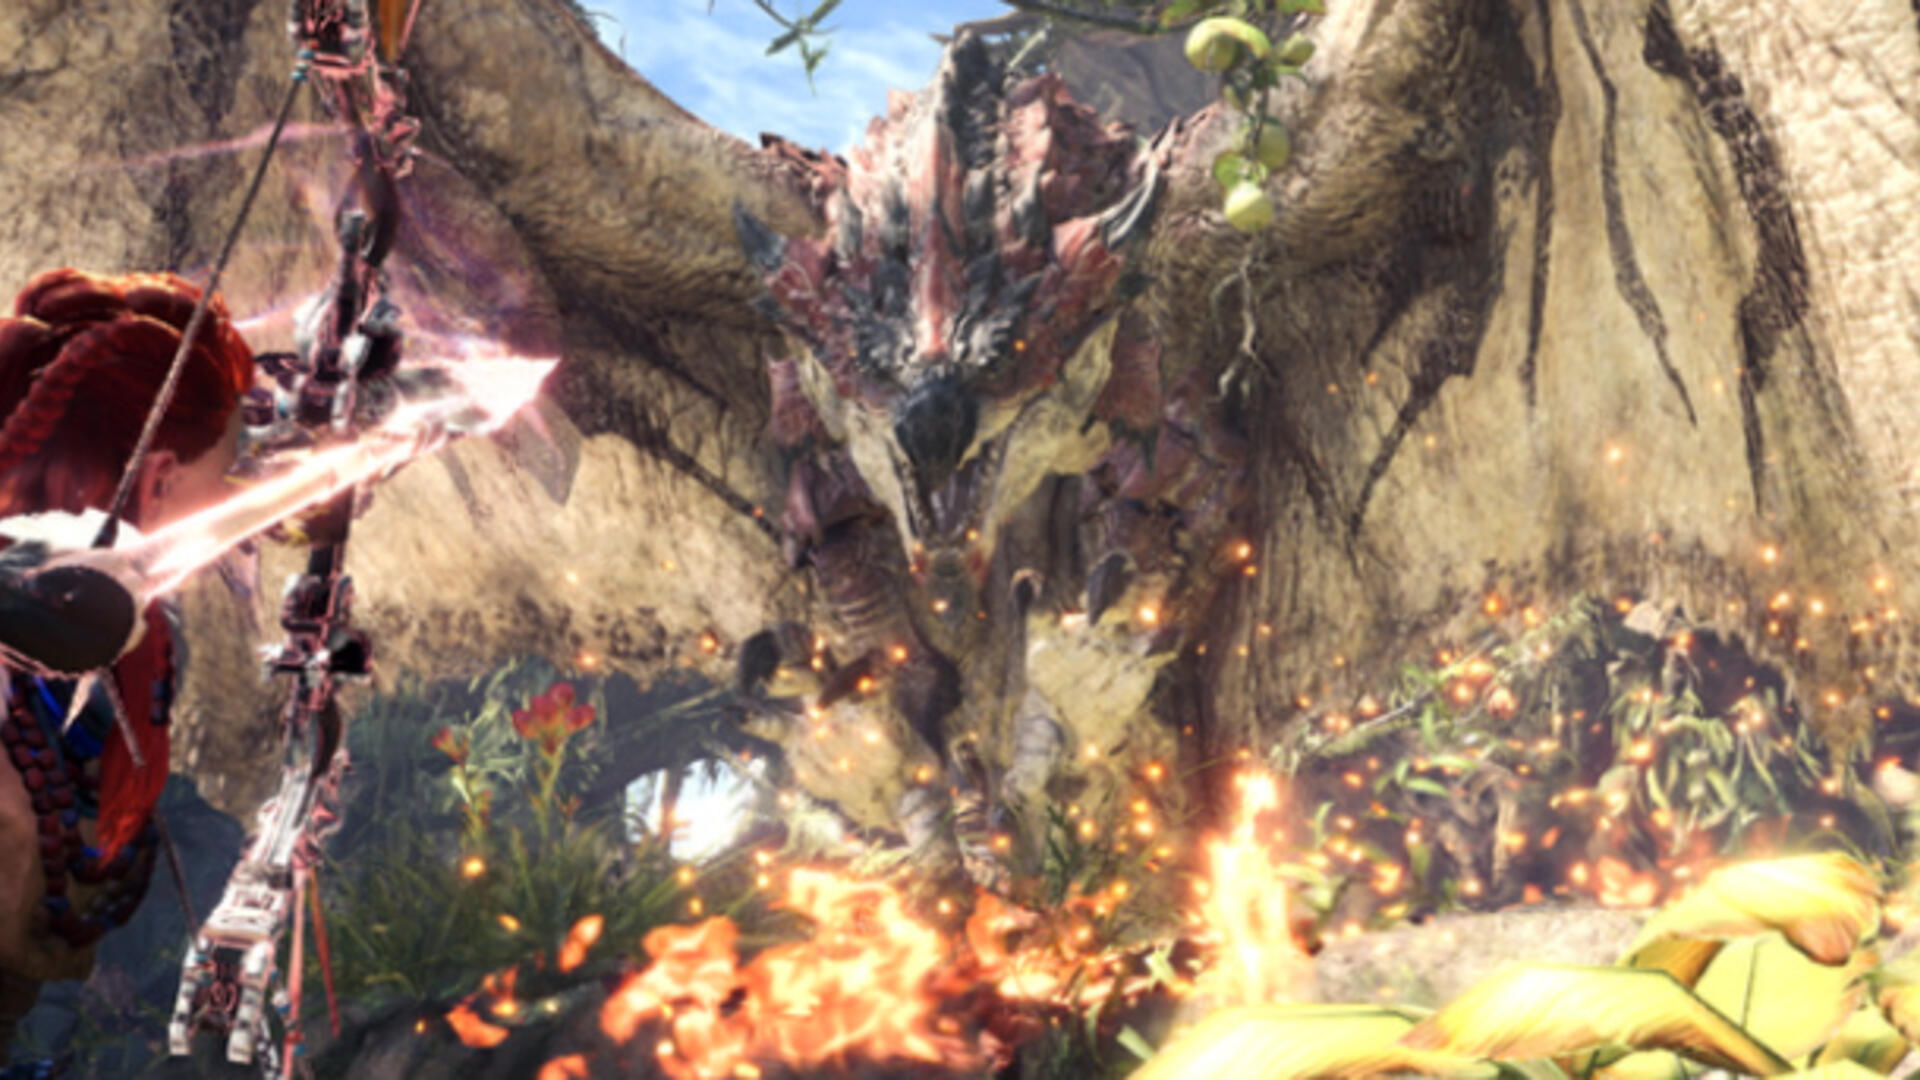 The Gateway Guide to Monster Hunter: Where Should I Start